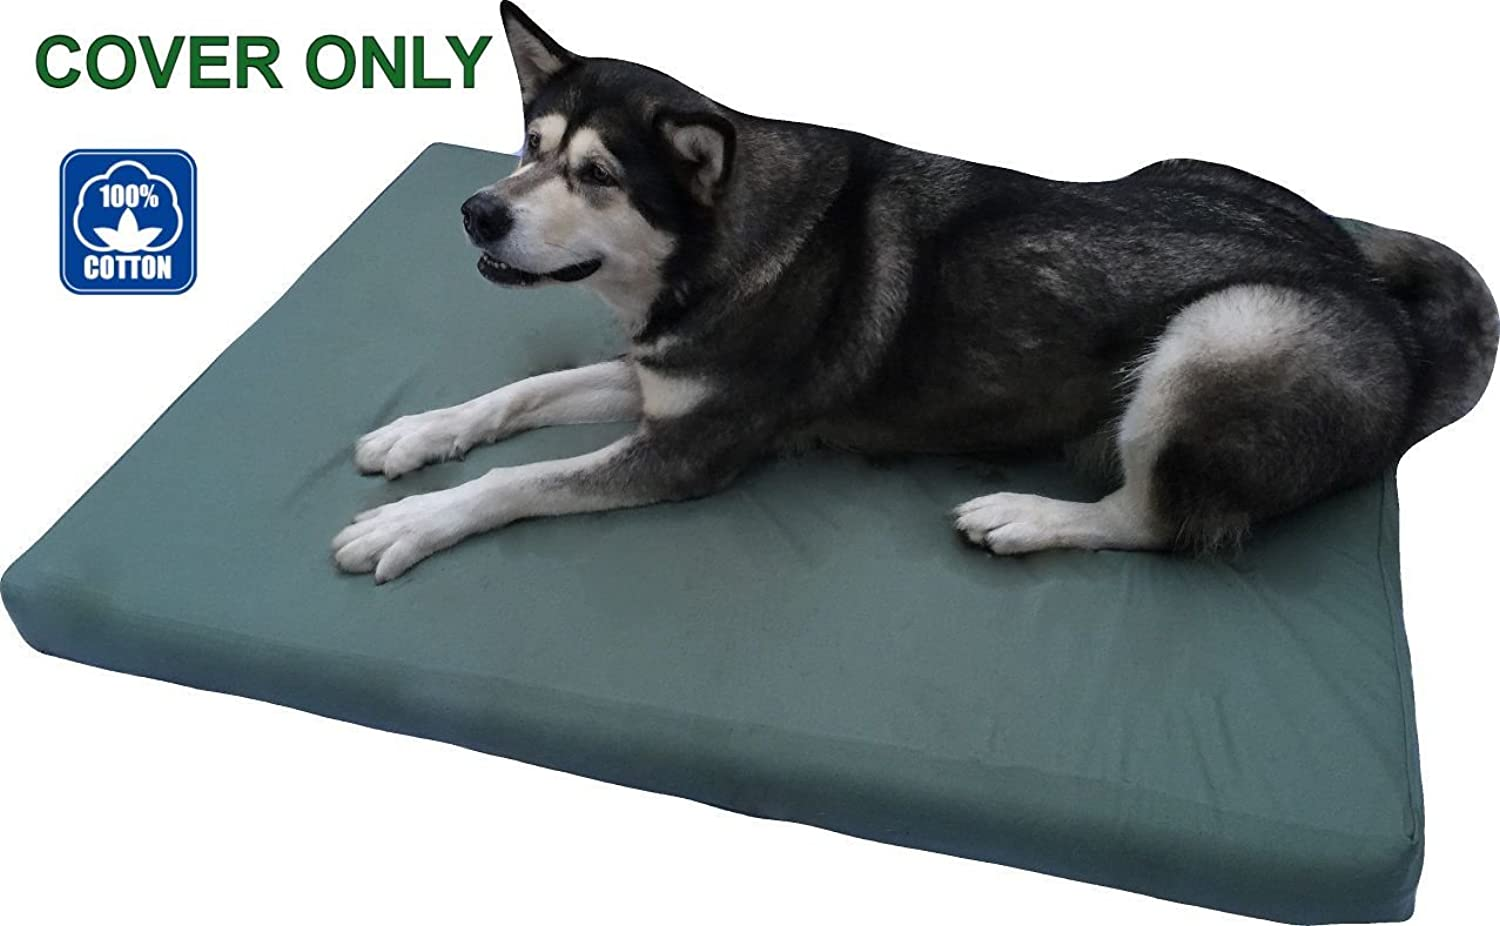 PetBed4Less Heavy Duty Green Canvas Pet Bed Dog Bed Zipper Cover Small, Medium to Super Large  8 Sizes  Replacement Zipper Cover only